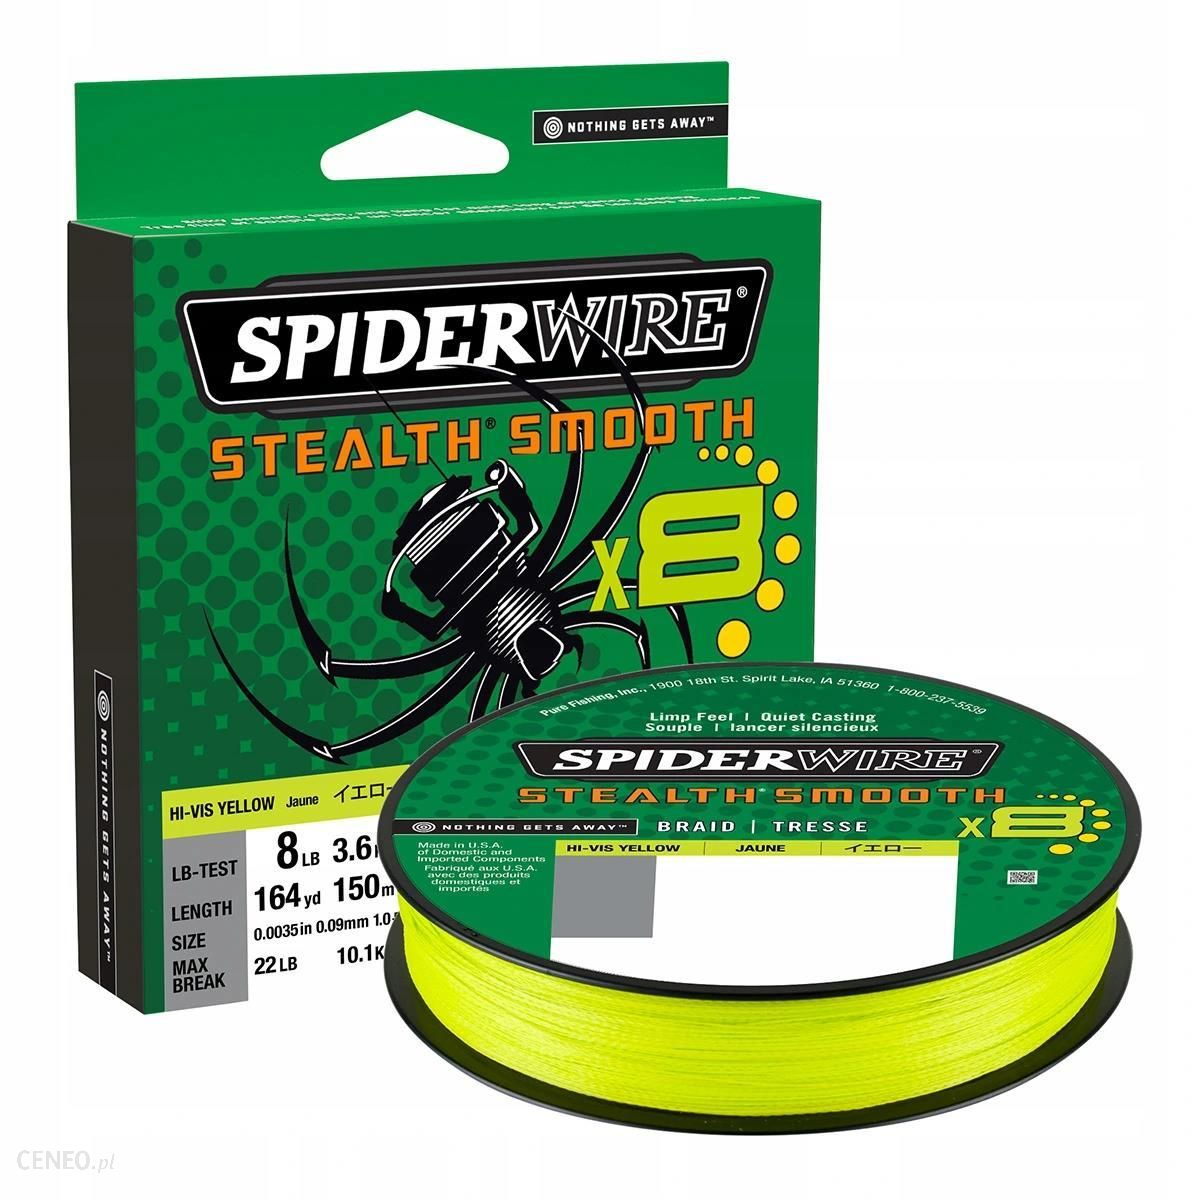 SPIDERWIRE STEALTH SMOOTH 8 0